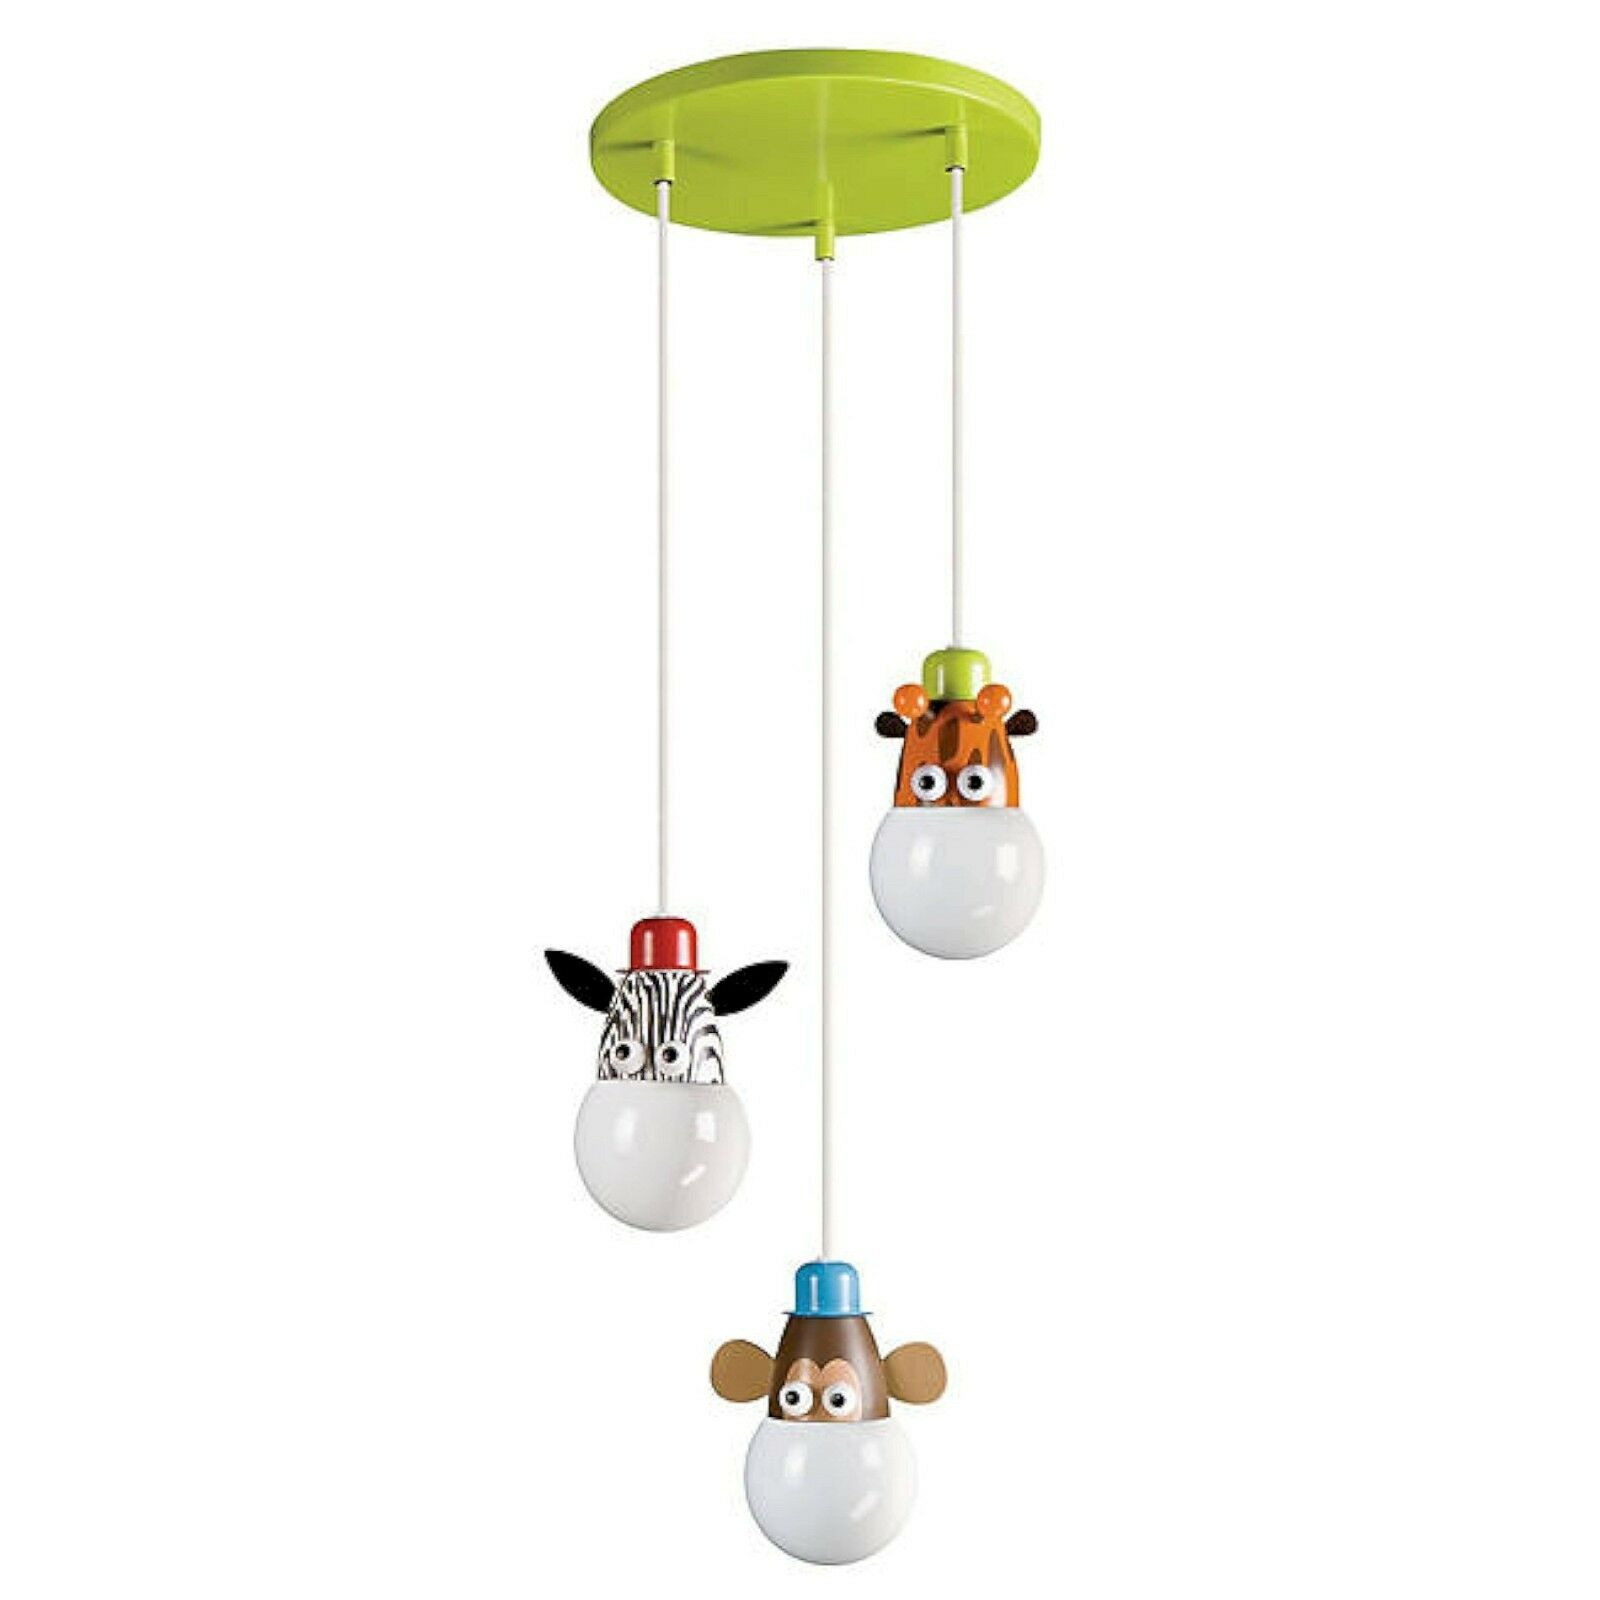 Philips Kidsplace Zoo Animal Suspension Light Ceiling Lamp